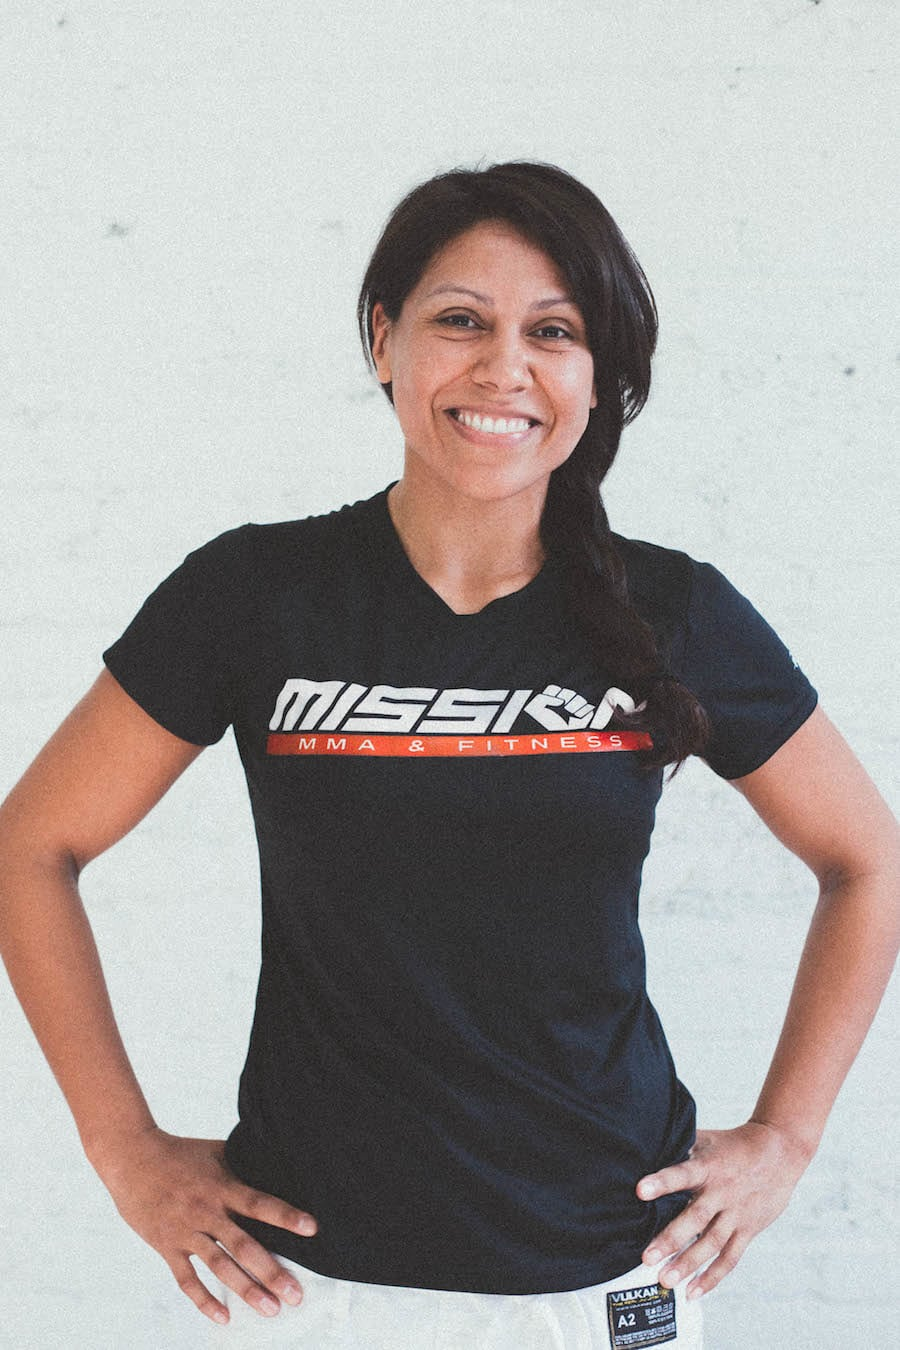 Veronica Galindo in 	 Chicago - Mission MMA And Fitness